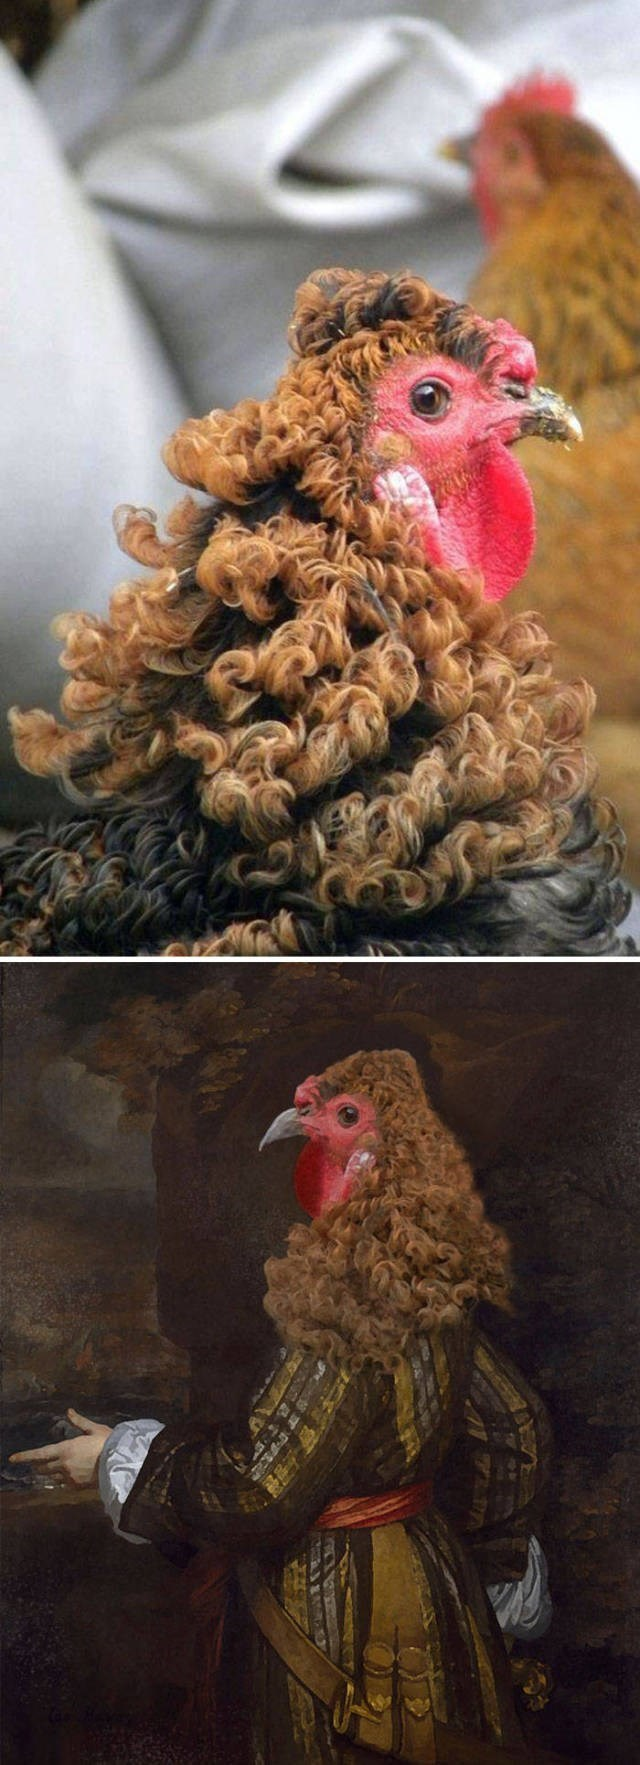 animal photoshop - Chicken